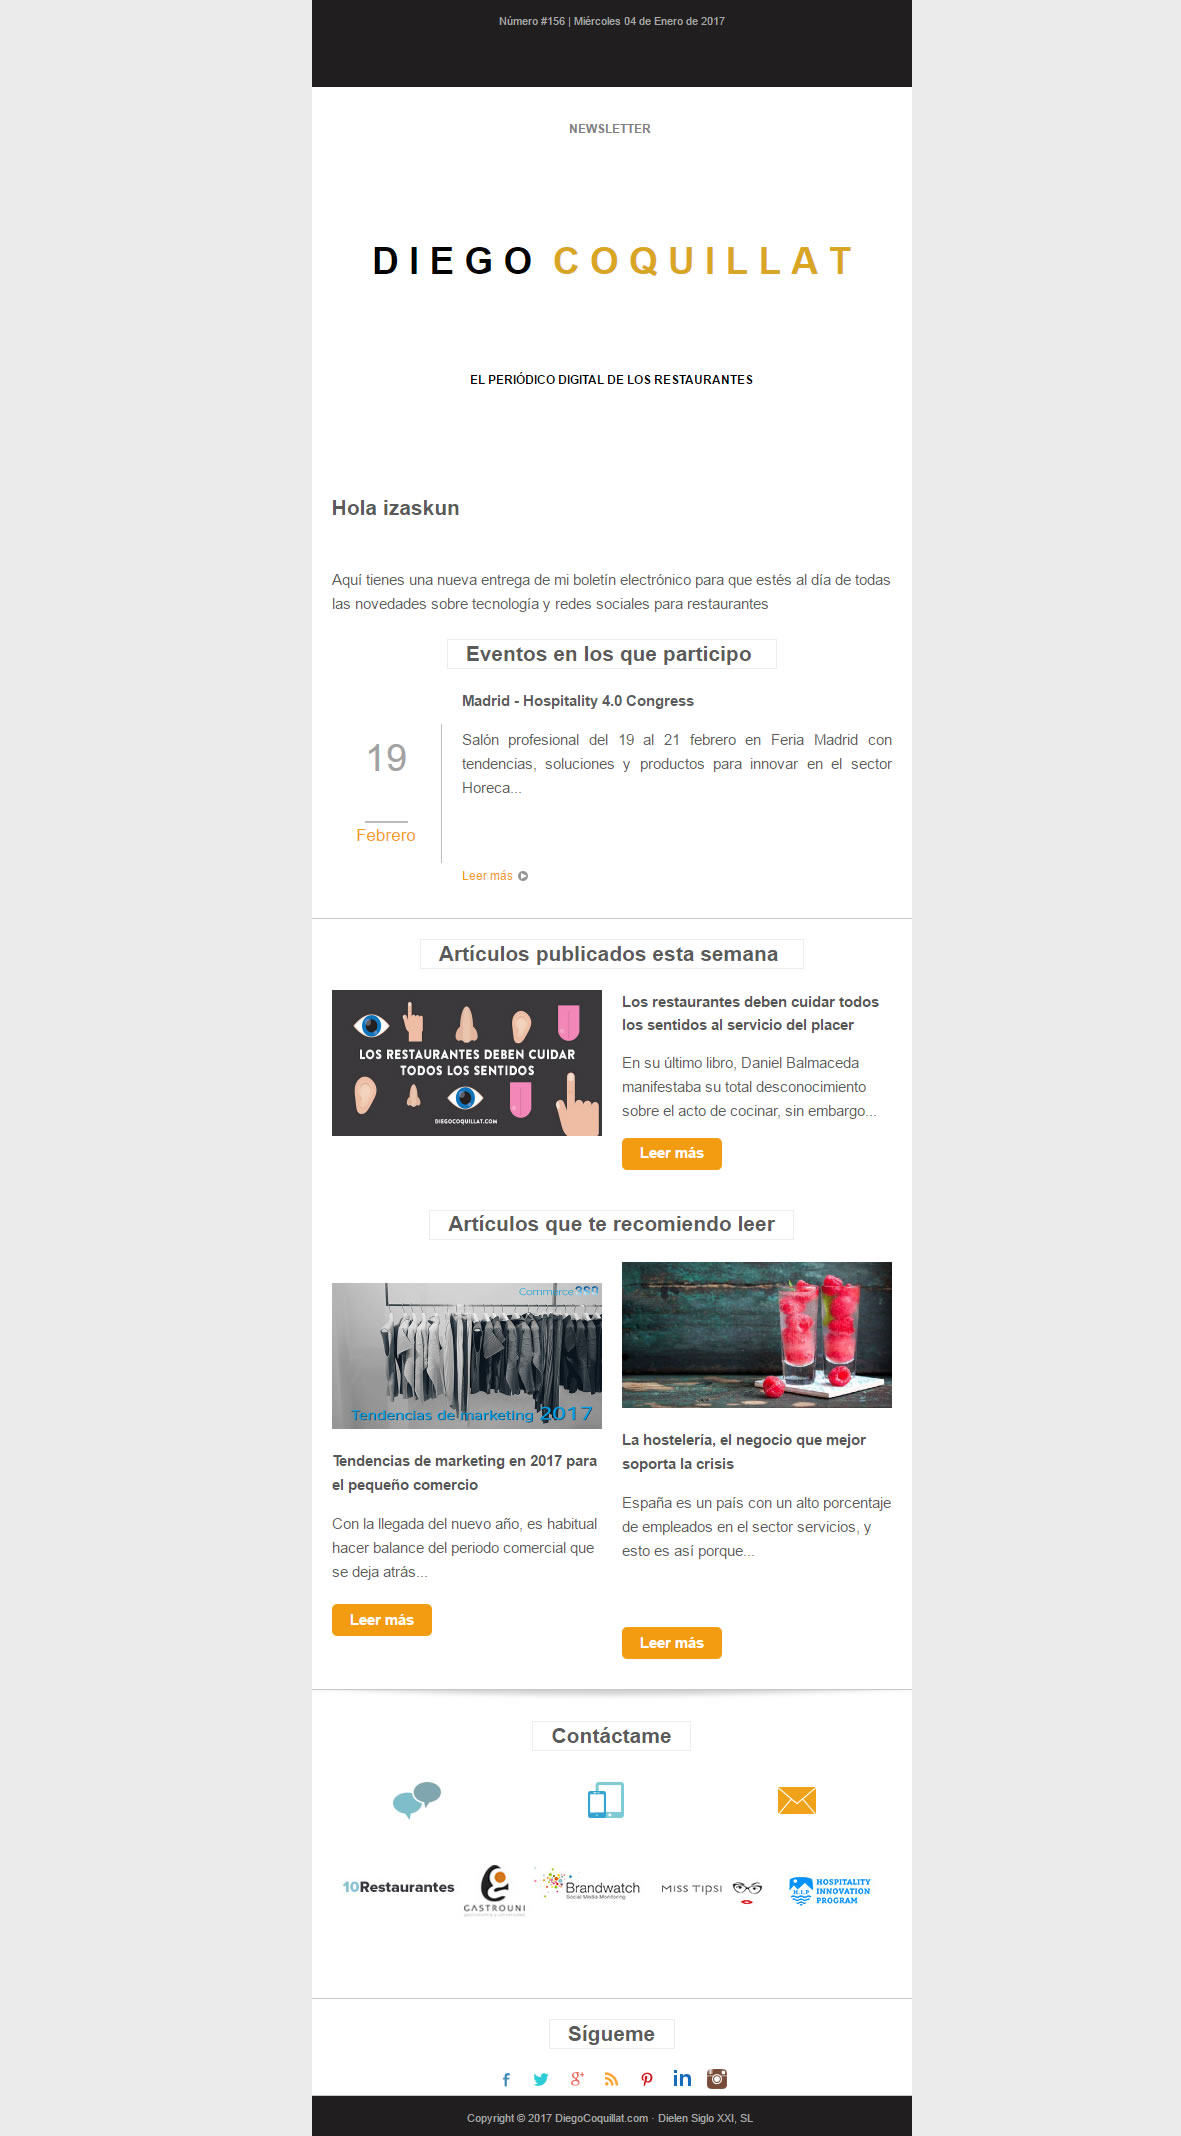 emails personalizados: Diego Coquillat